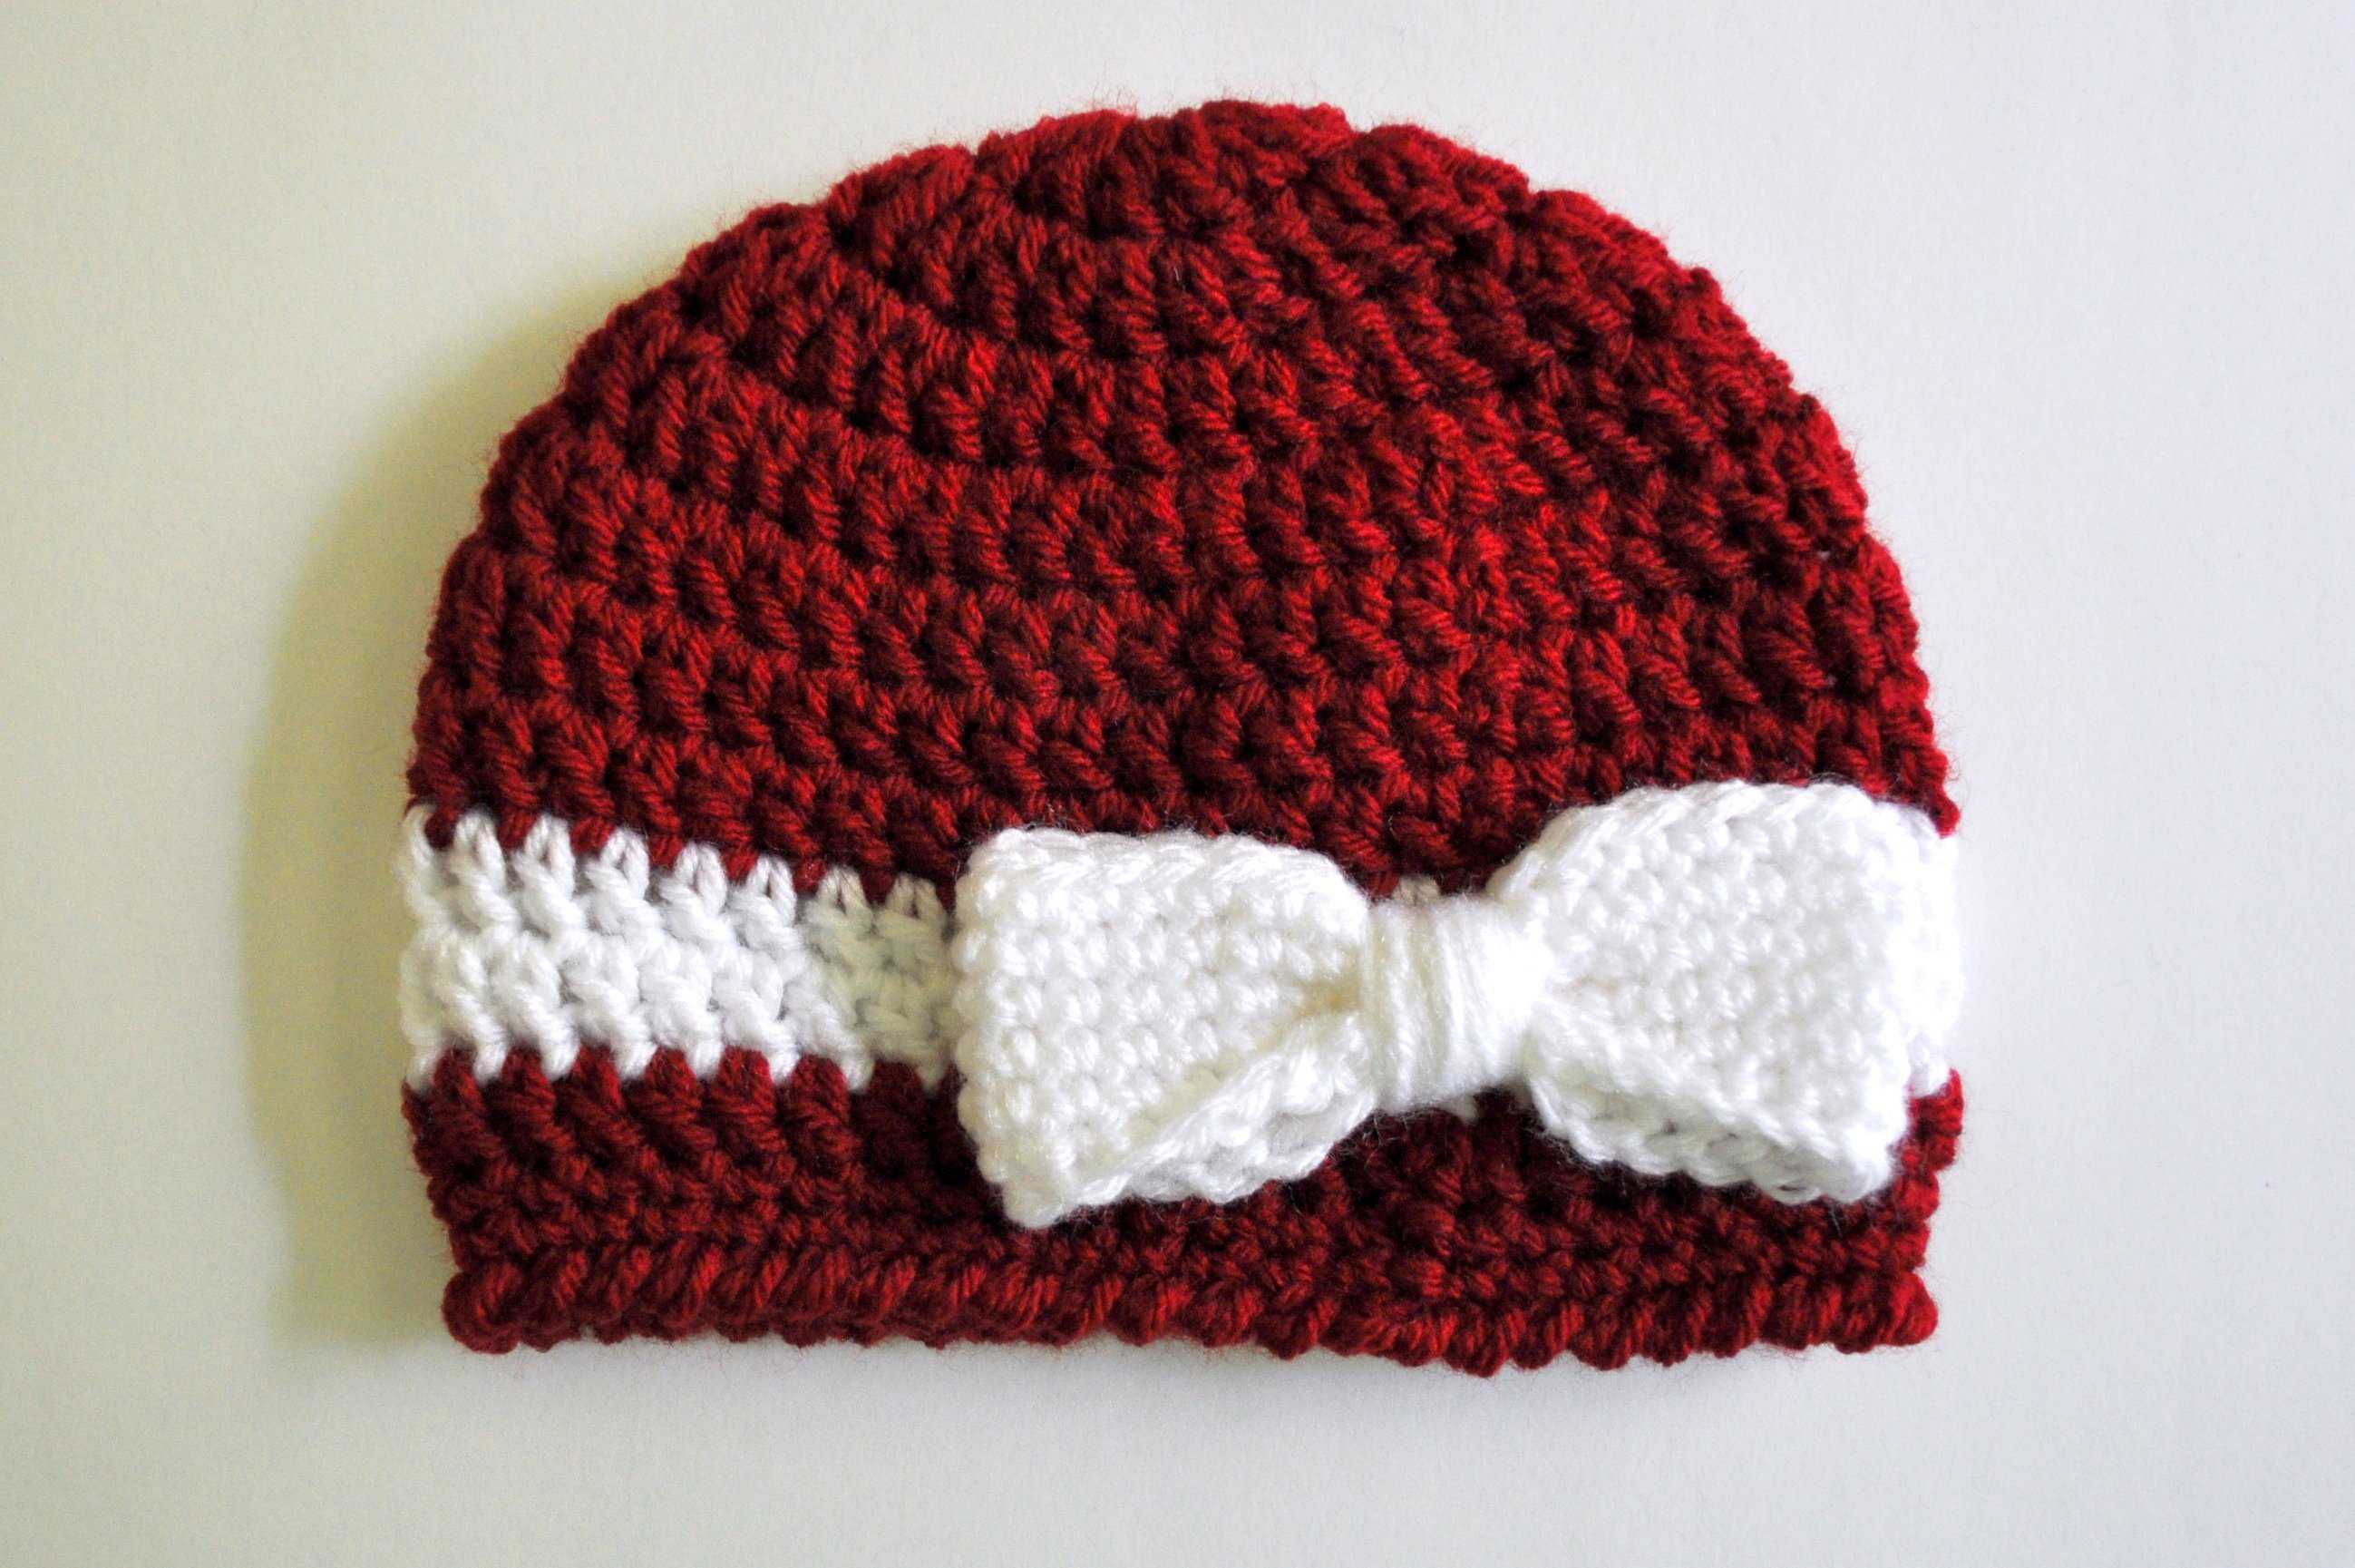 Free Crochet Pattern For A Newborn Hat : 25 Easy Crochet Bow Patterns Guide Patterns